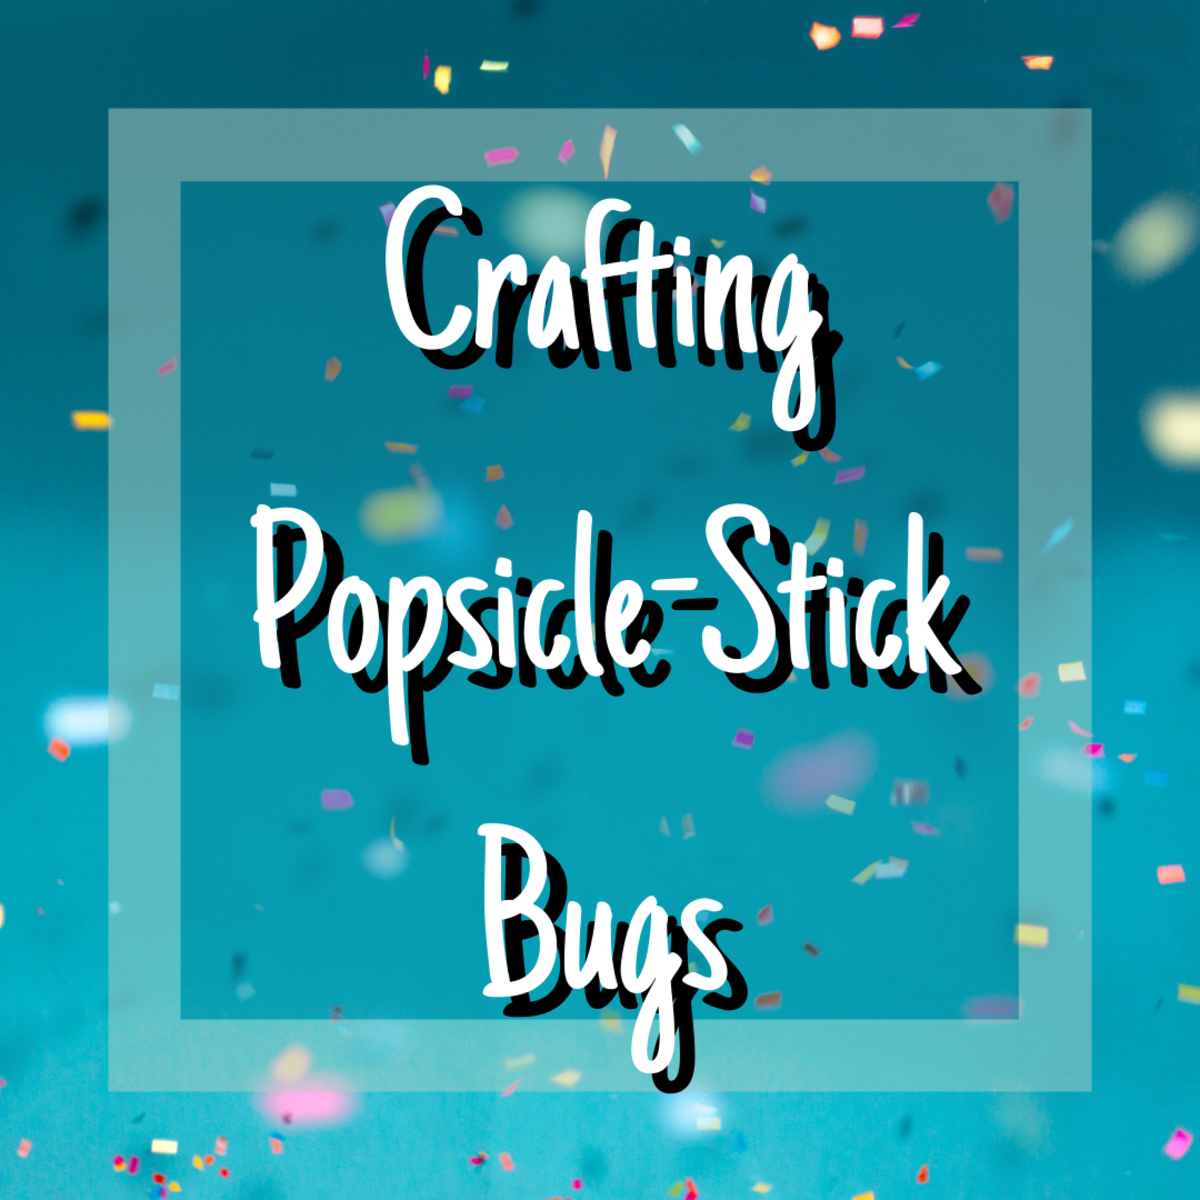 Learn how to craft your own colorful popsicle-stick bugs with this simple, step-by-step guide.